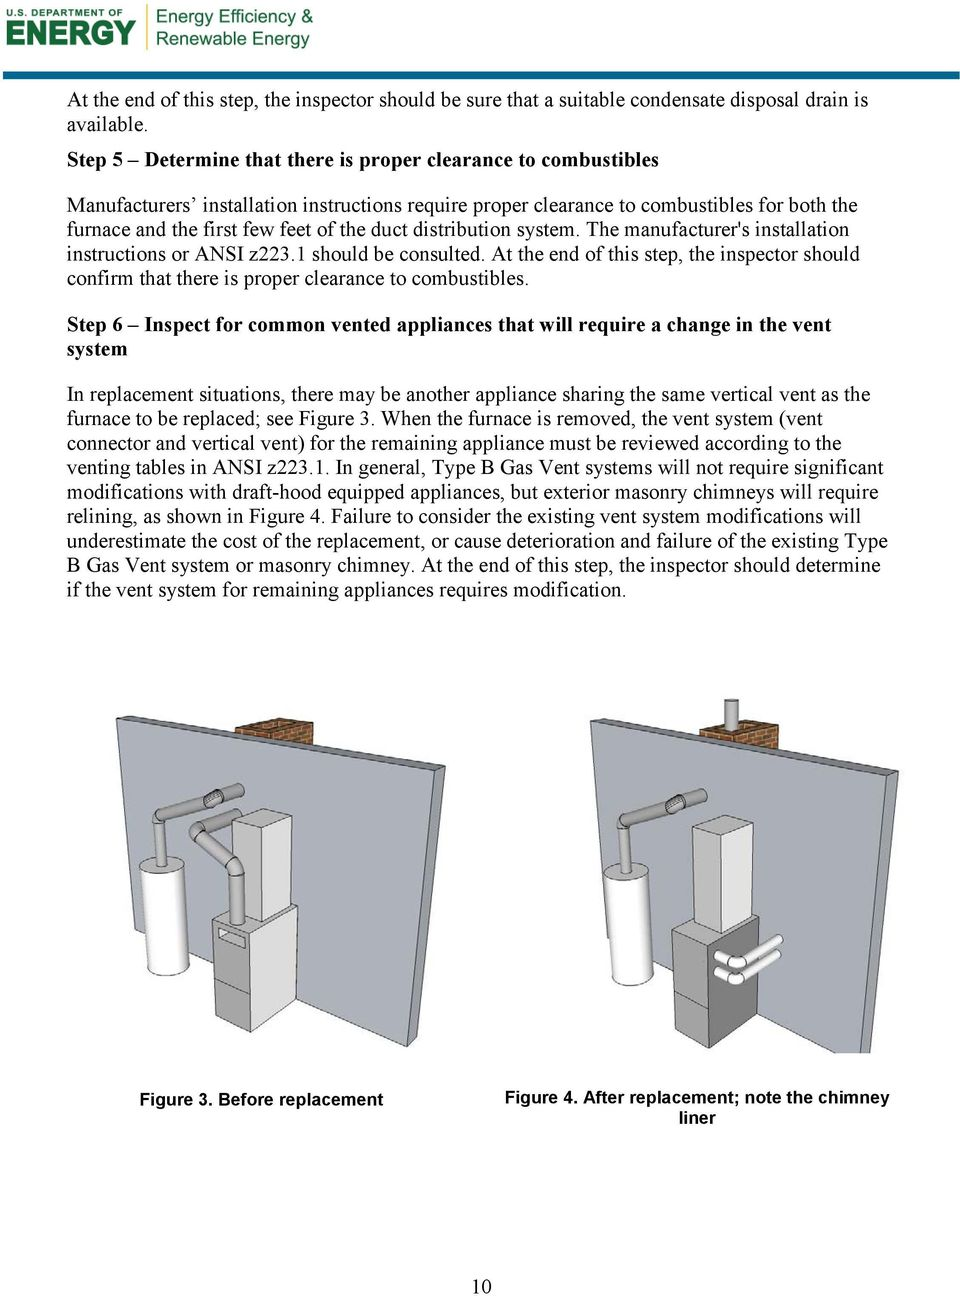 duct distribution system. The manufacturer's installation instructions or ANSI z223.1 should be consulted.